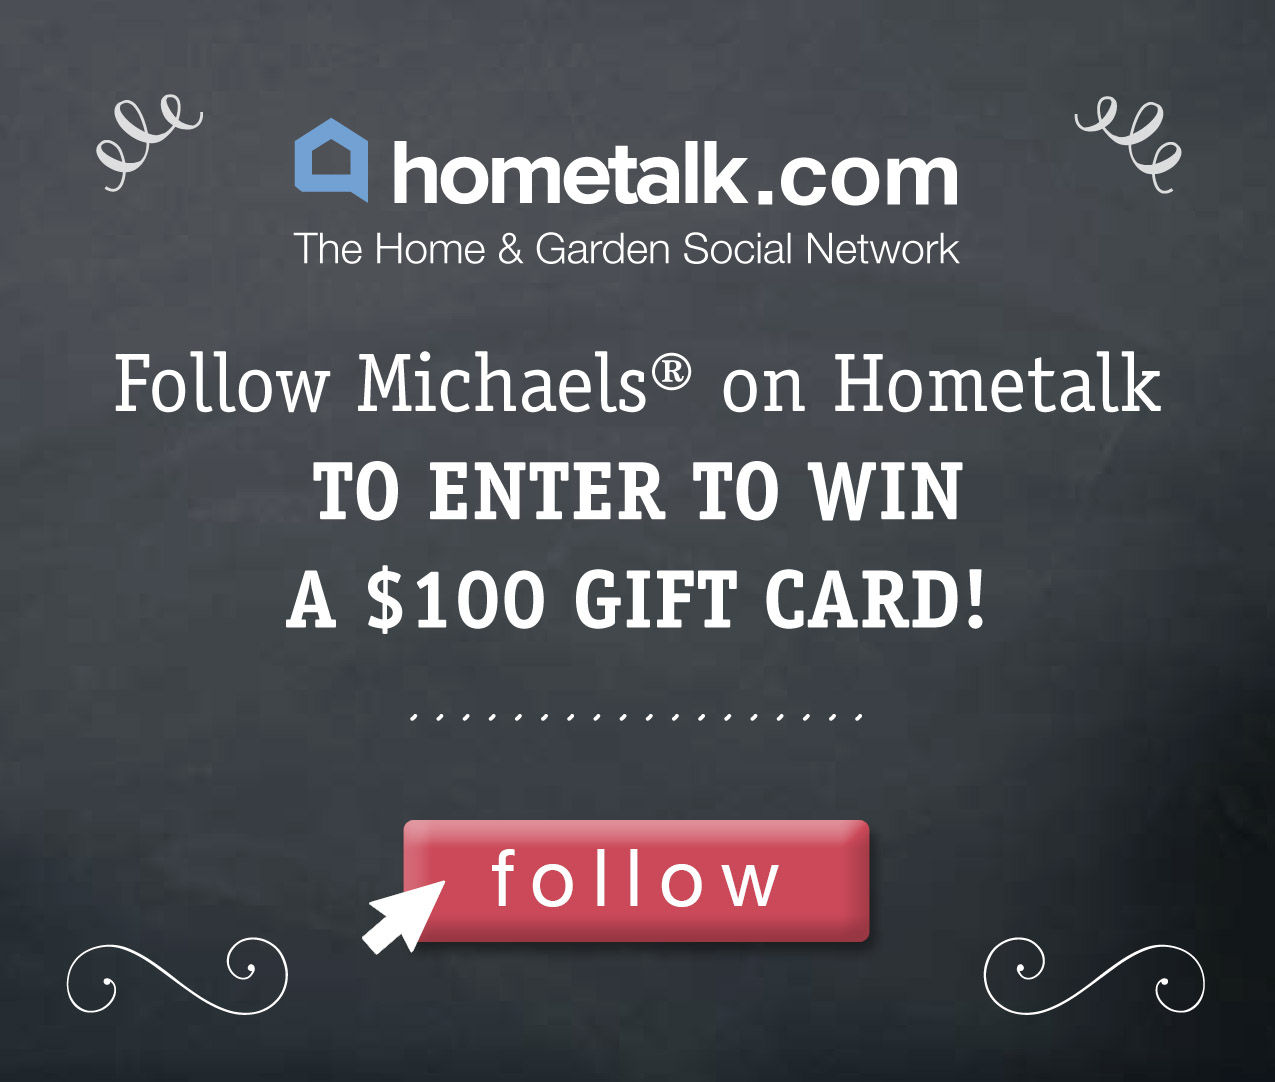 Michaels-hometalk-giveaway3101